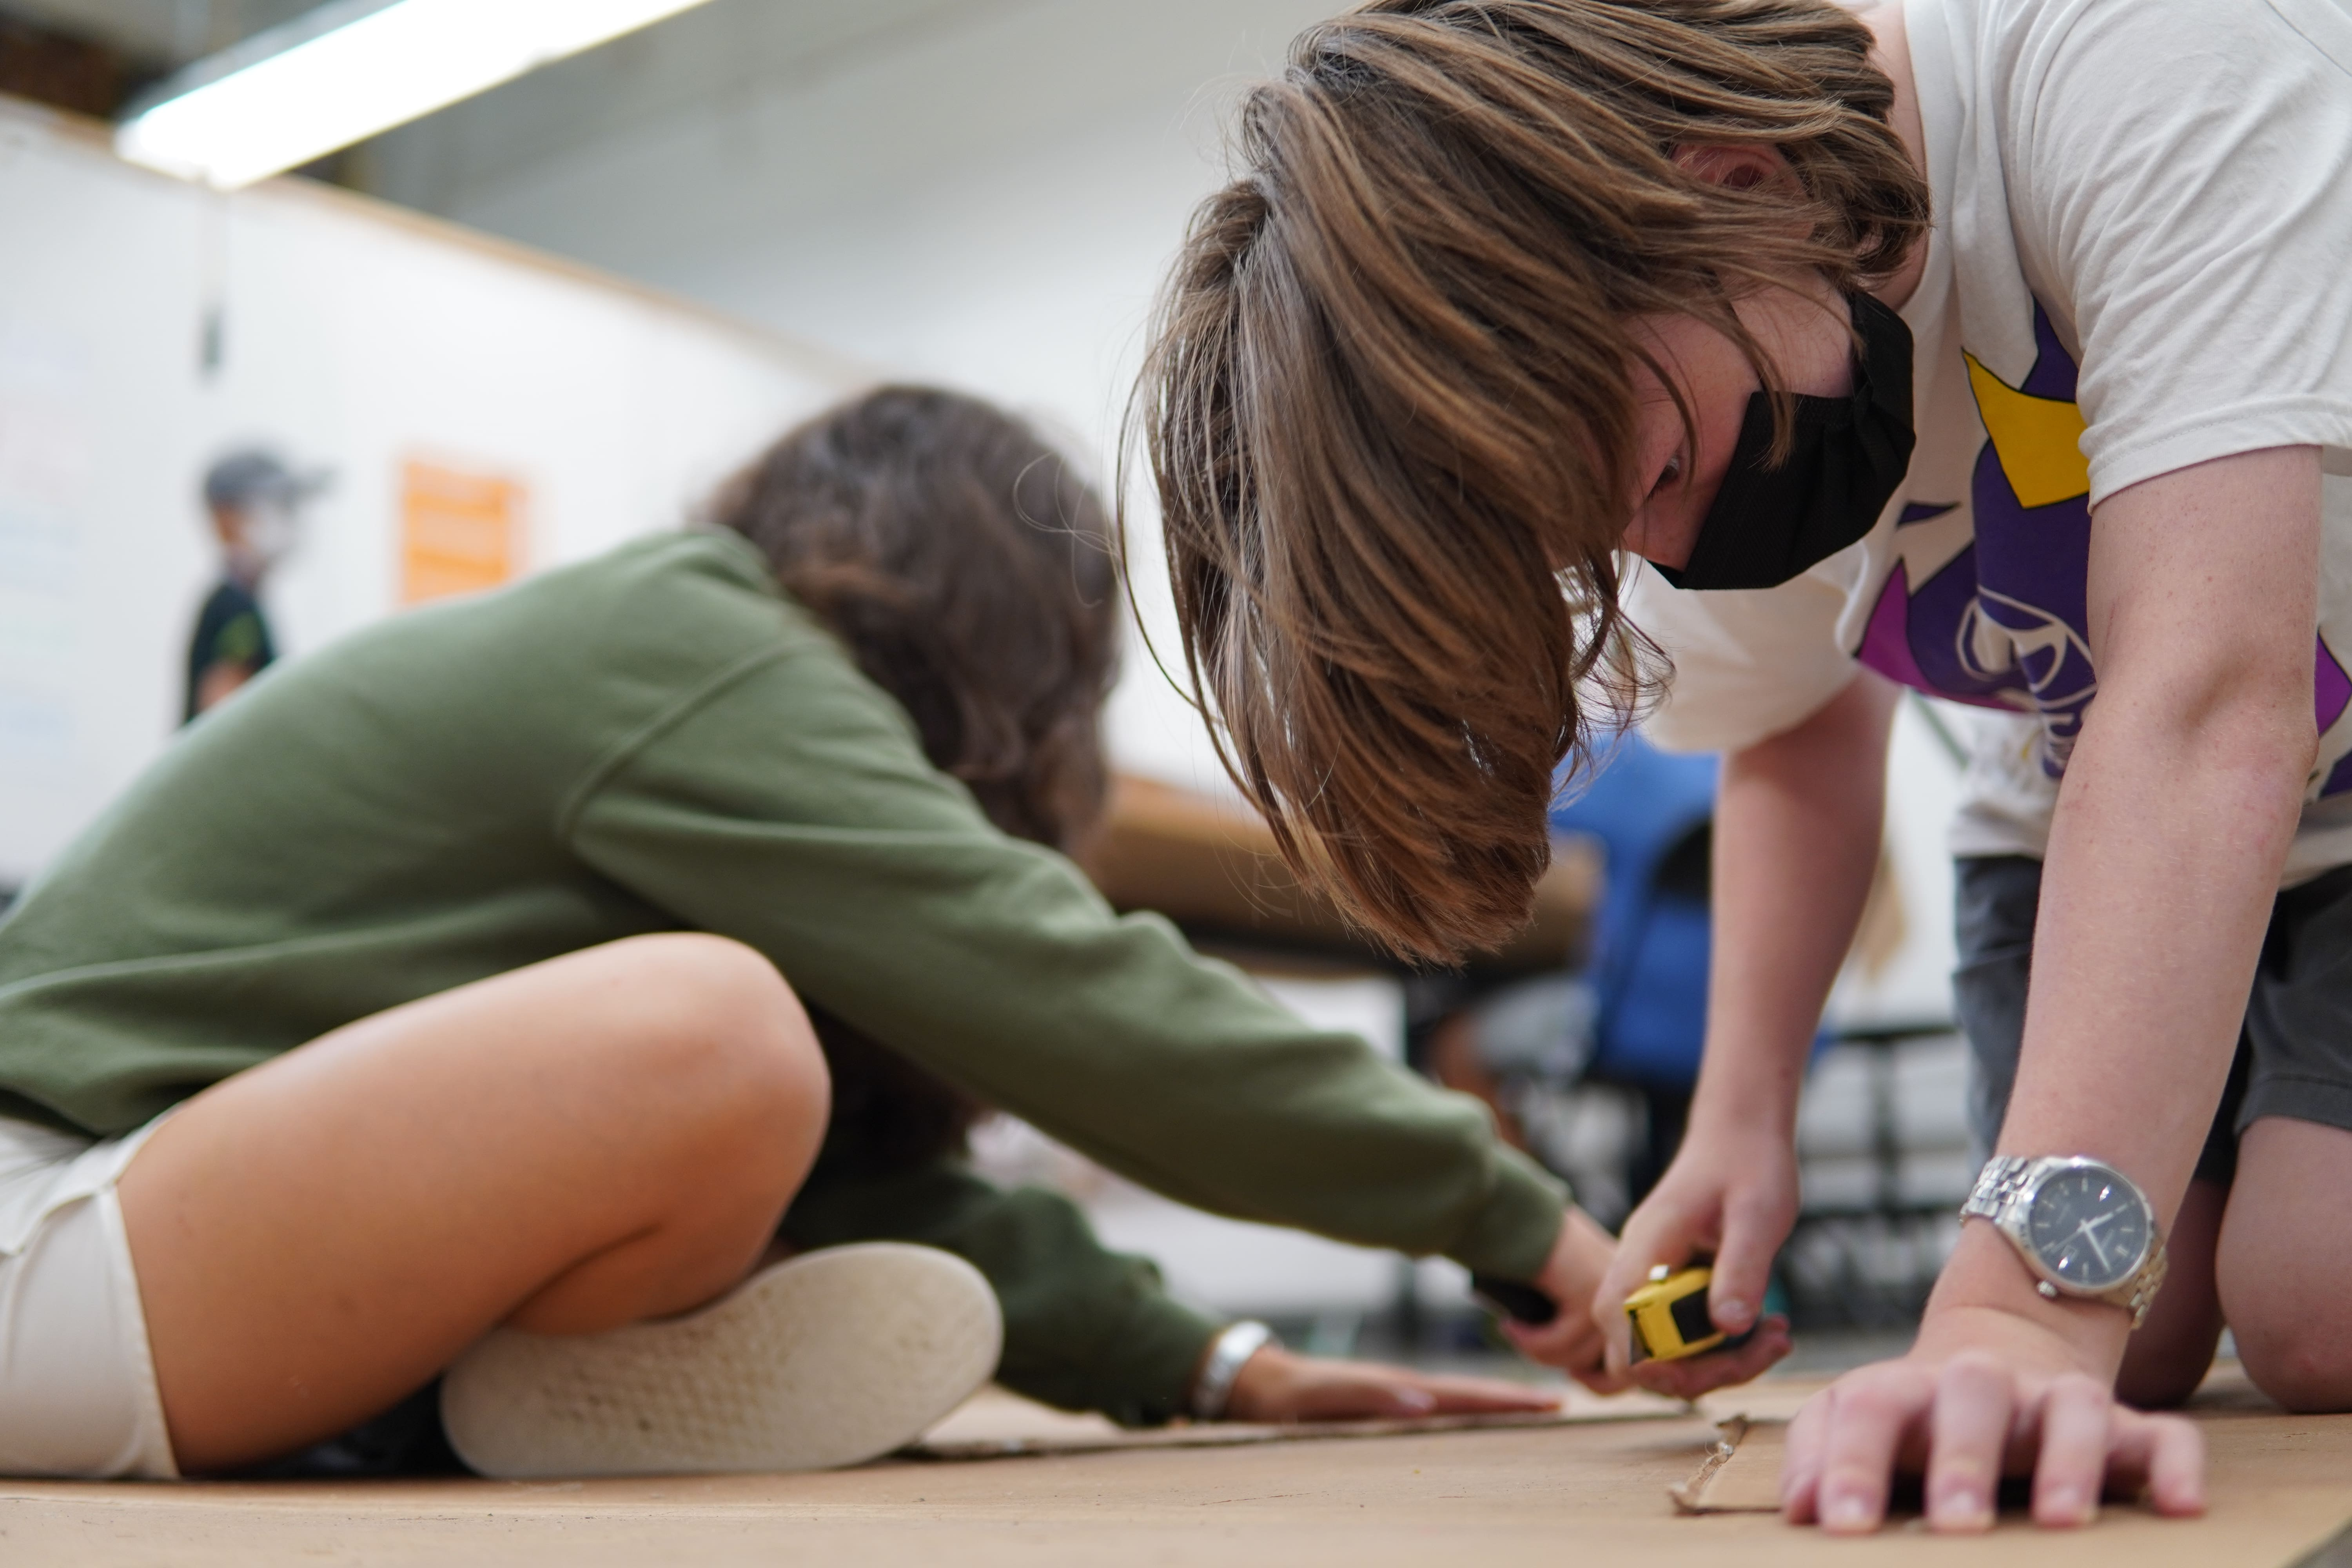 A student in a white t-shirt leans over a piece of cardboard on the floor to cut out a piece of additional cardboard for his roller coaster model.